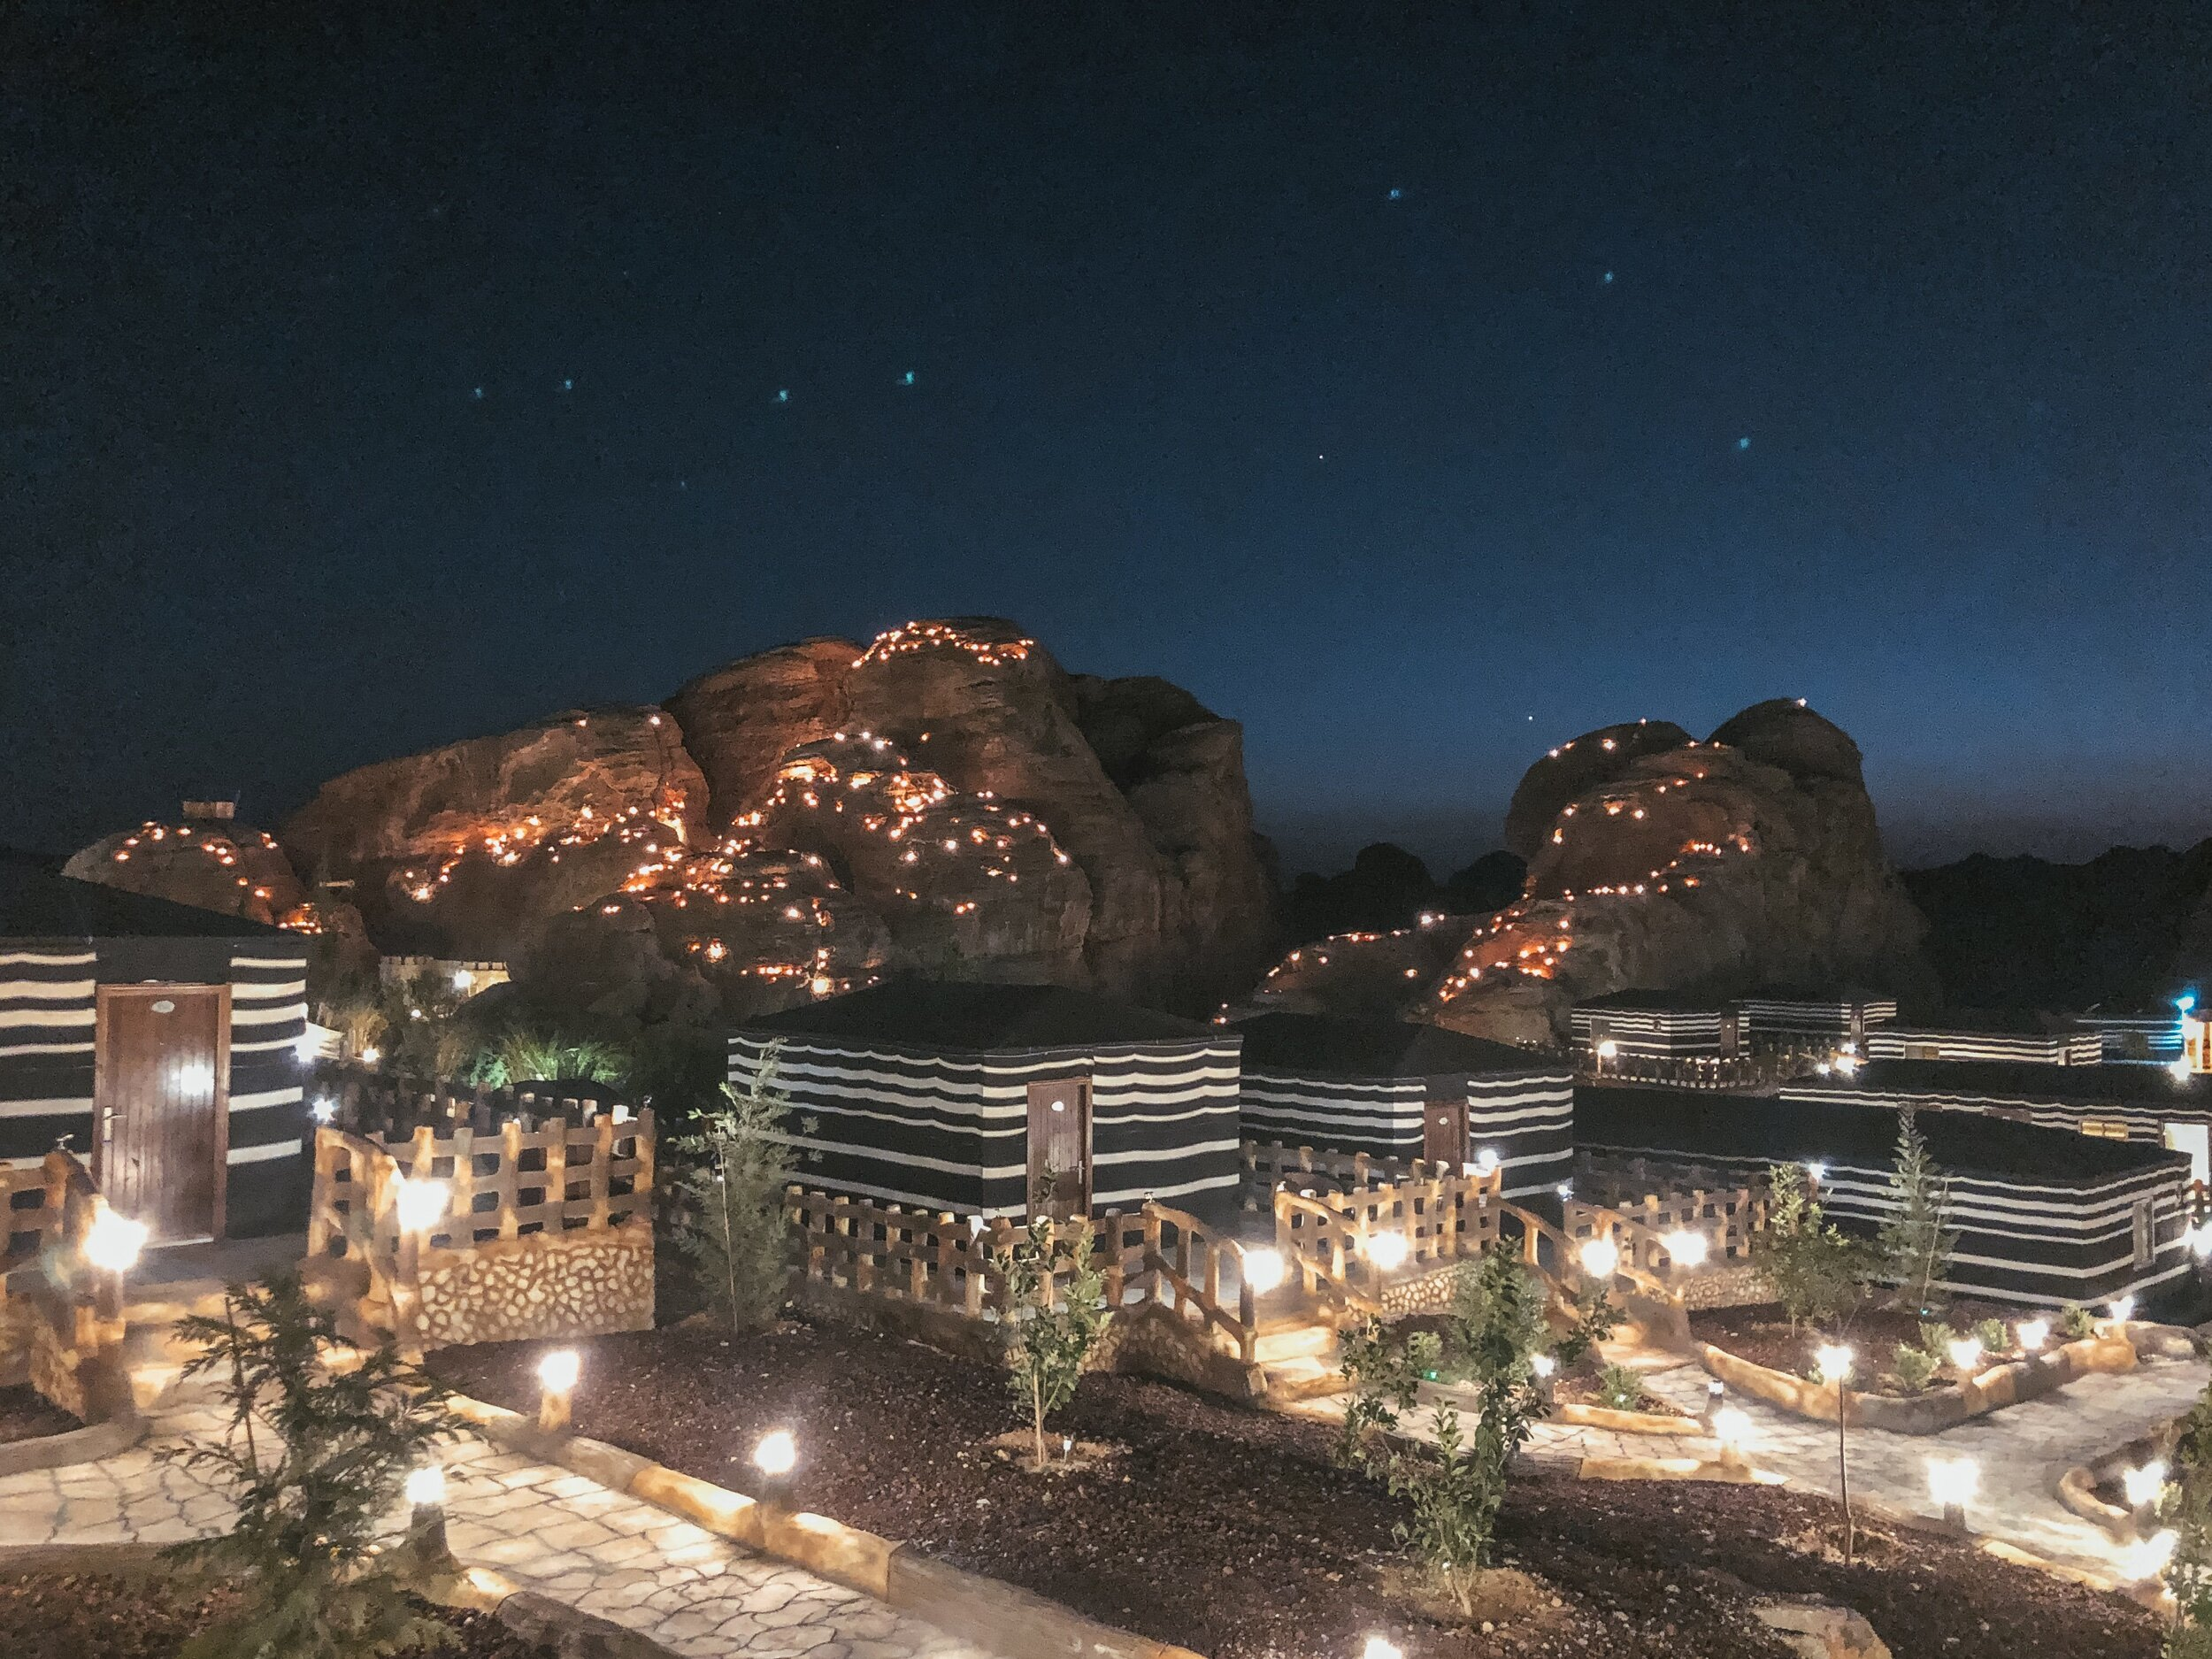 The lights in the caves is another hotel. It looked so cute lit up at night. It didn't look real. I loved it here.